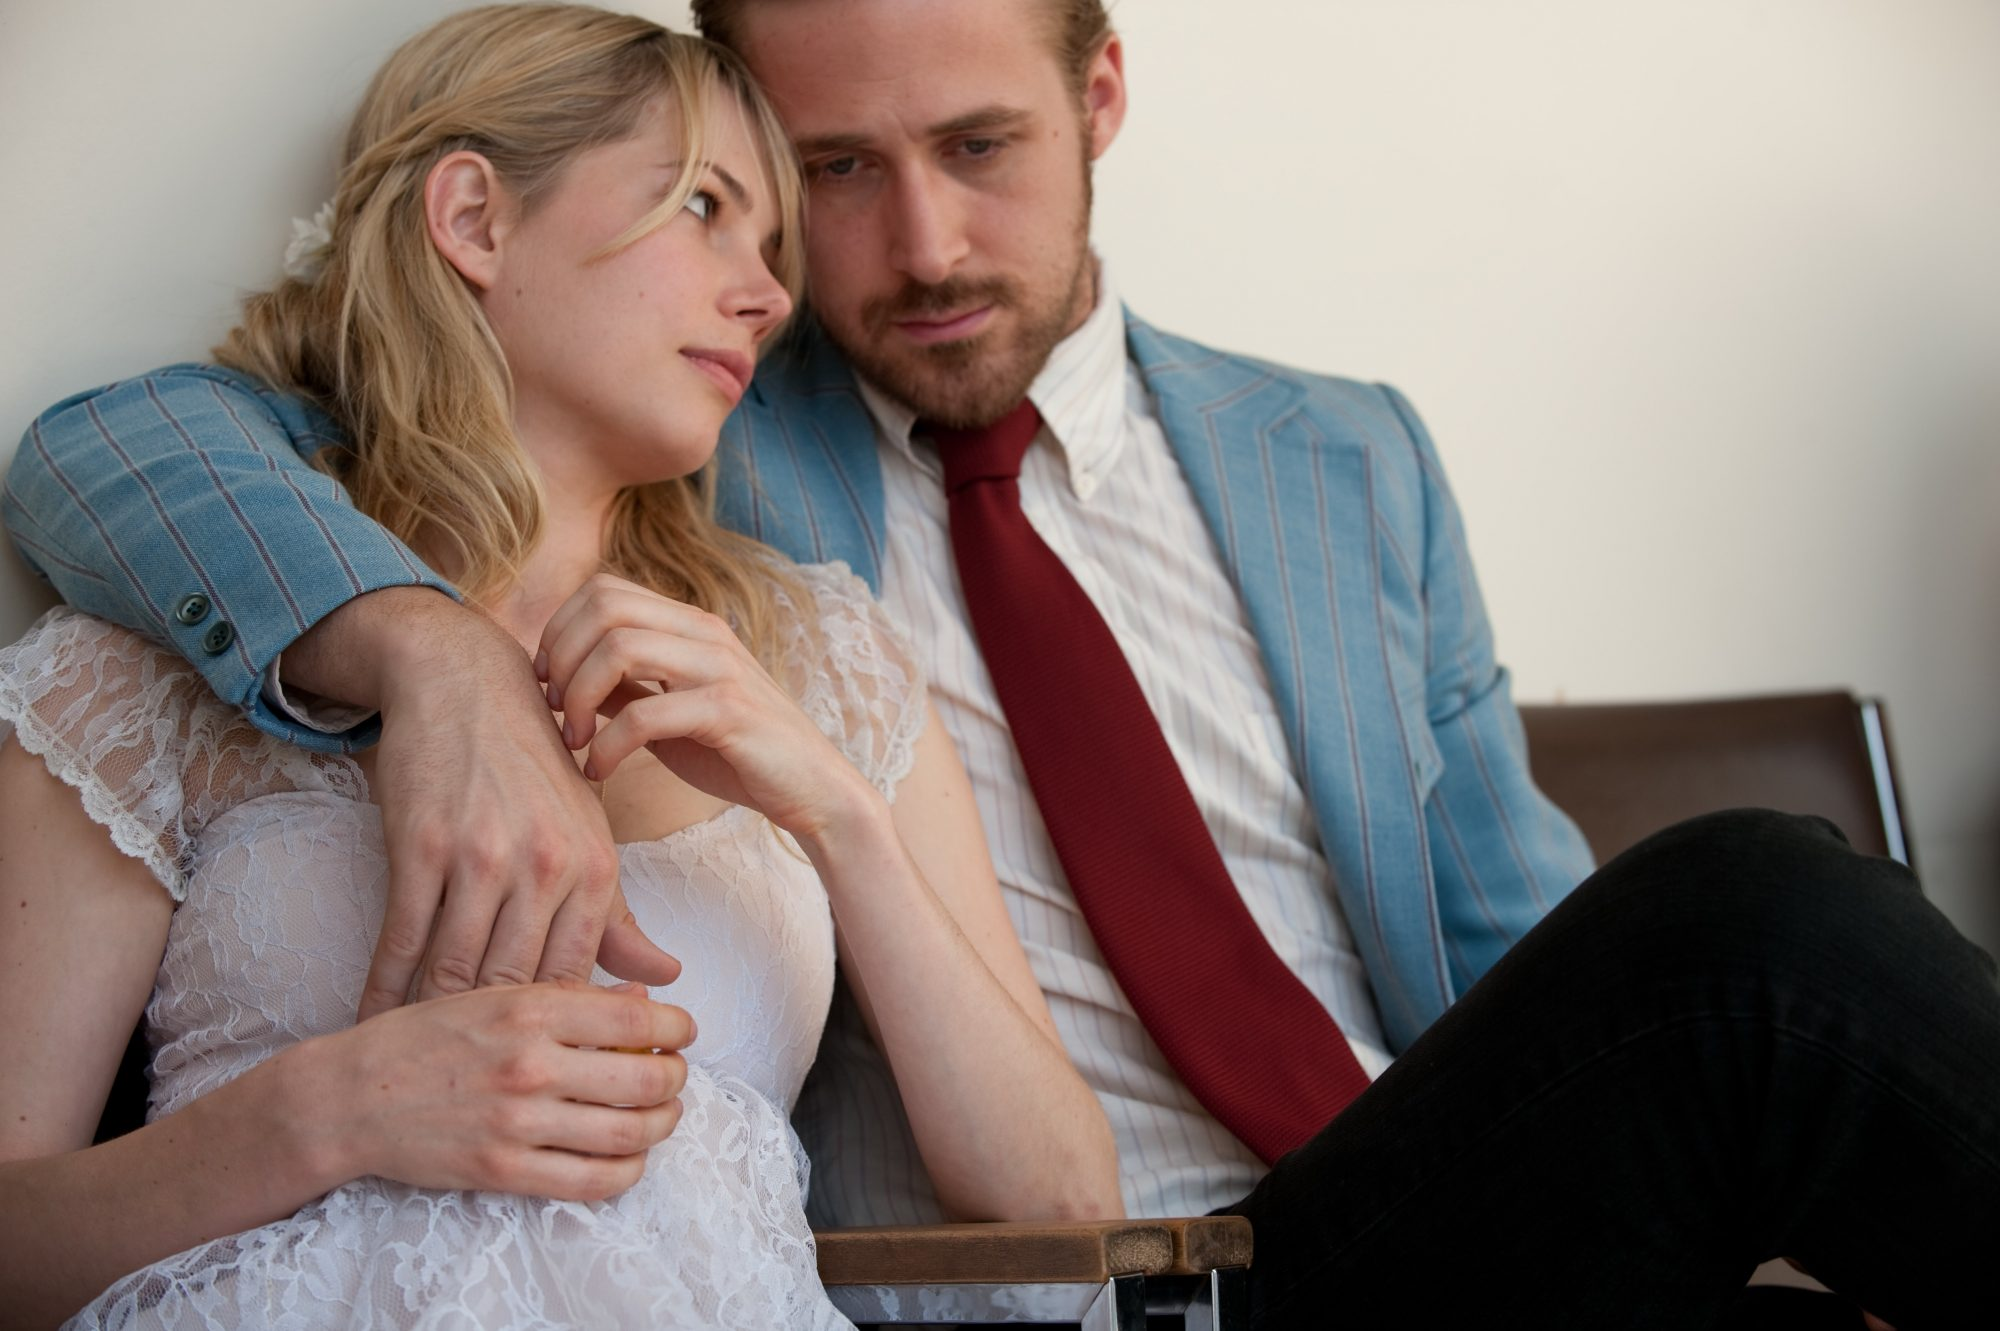 15 movies about love that are actually super depressing